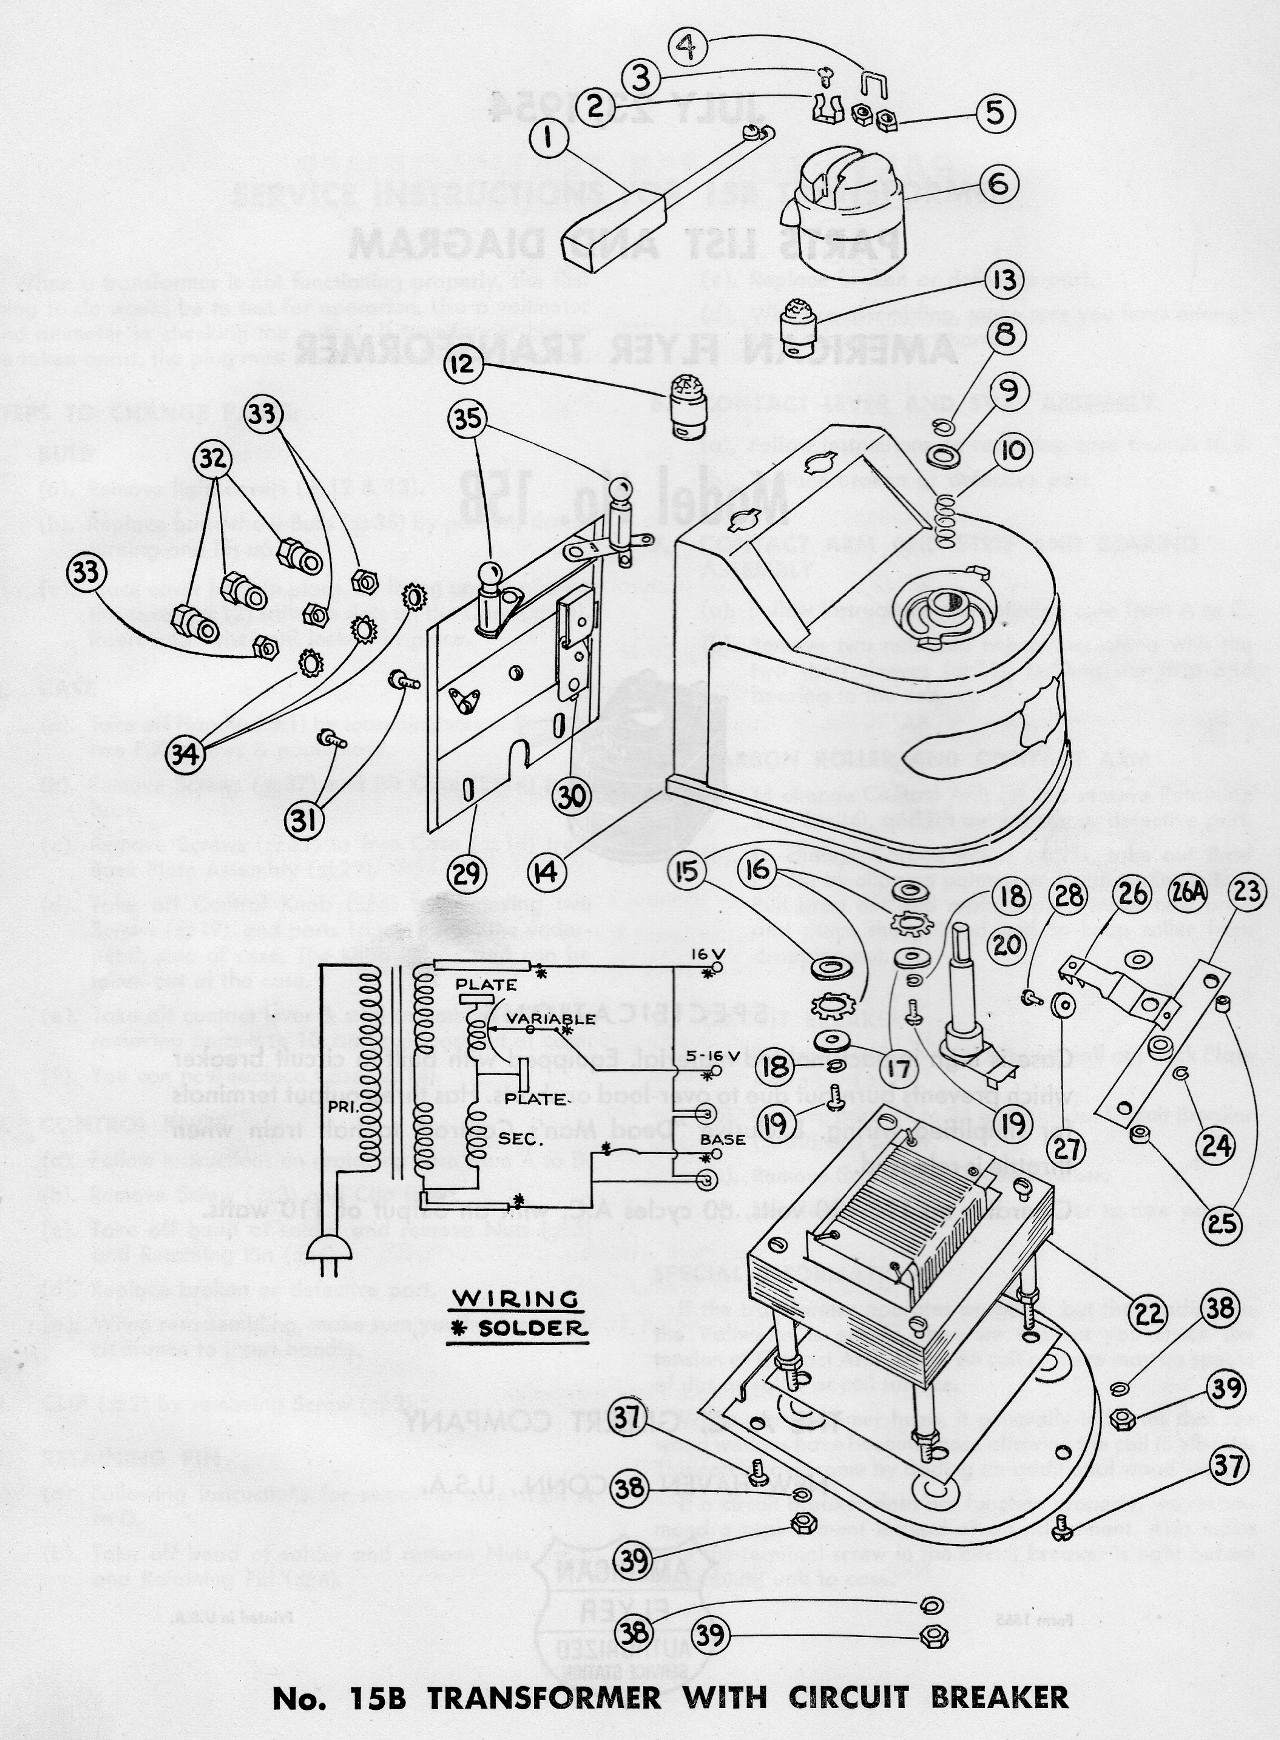 American Flyer Transformer 15b Parts List Amp Diagram